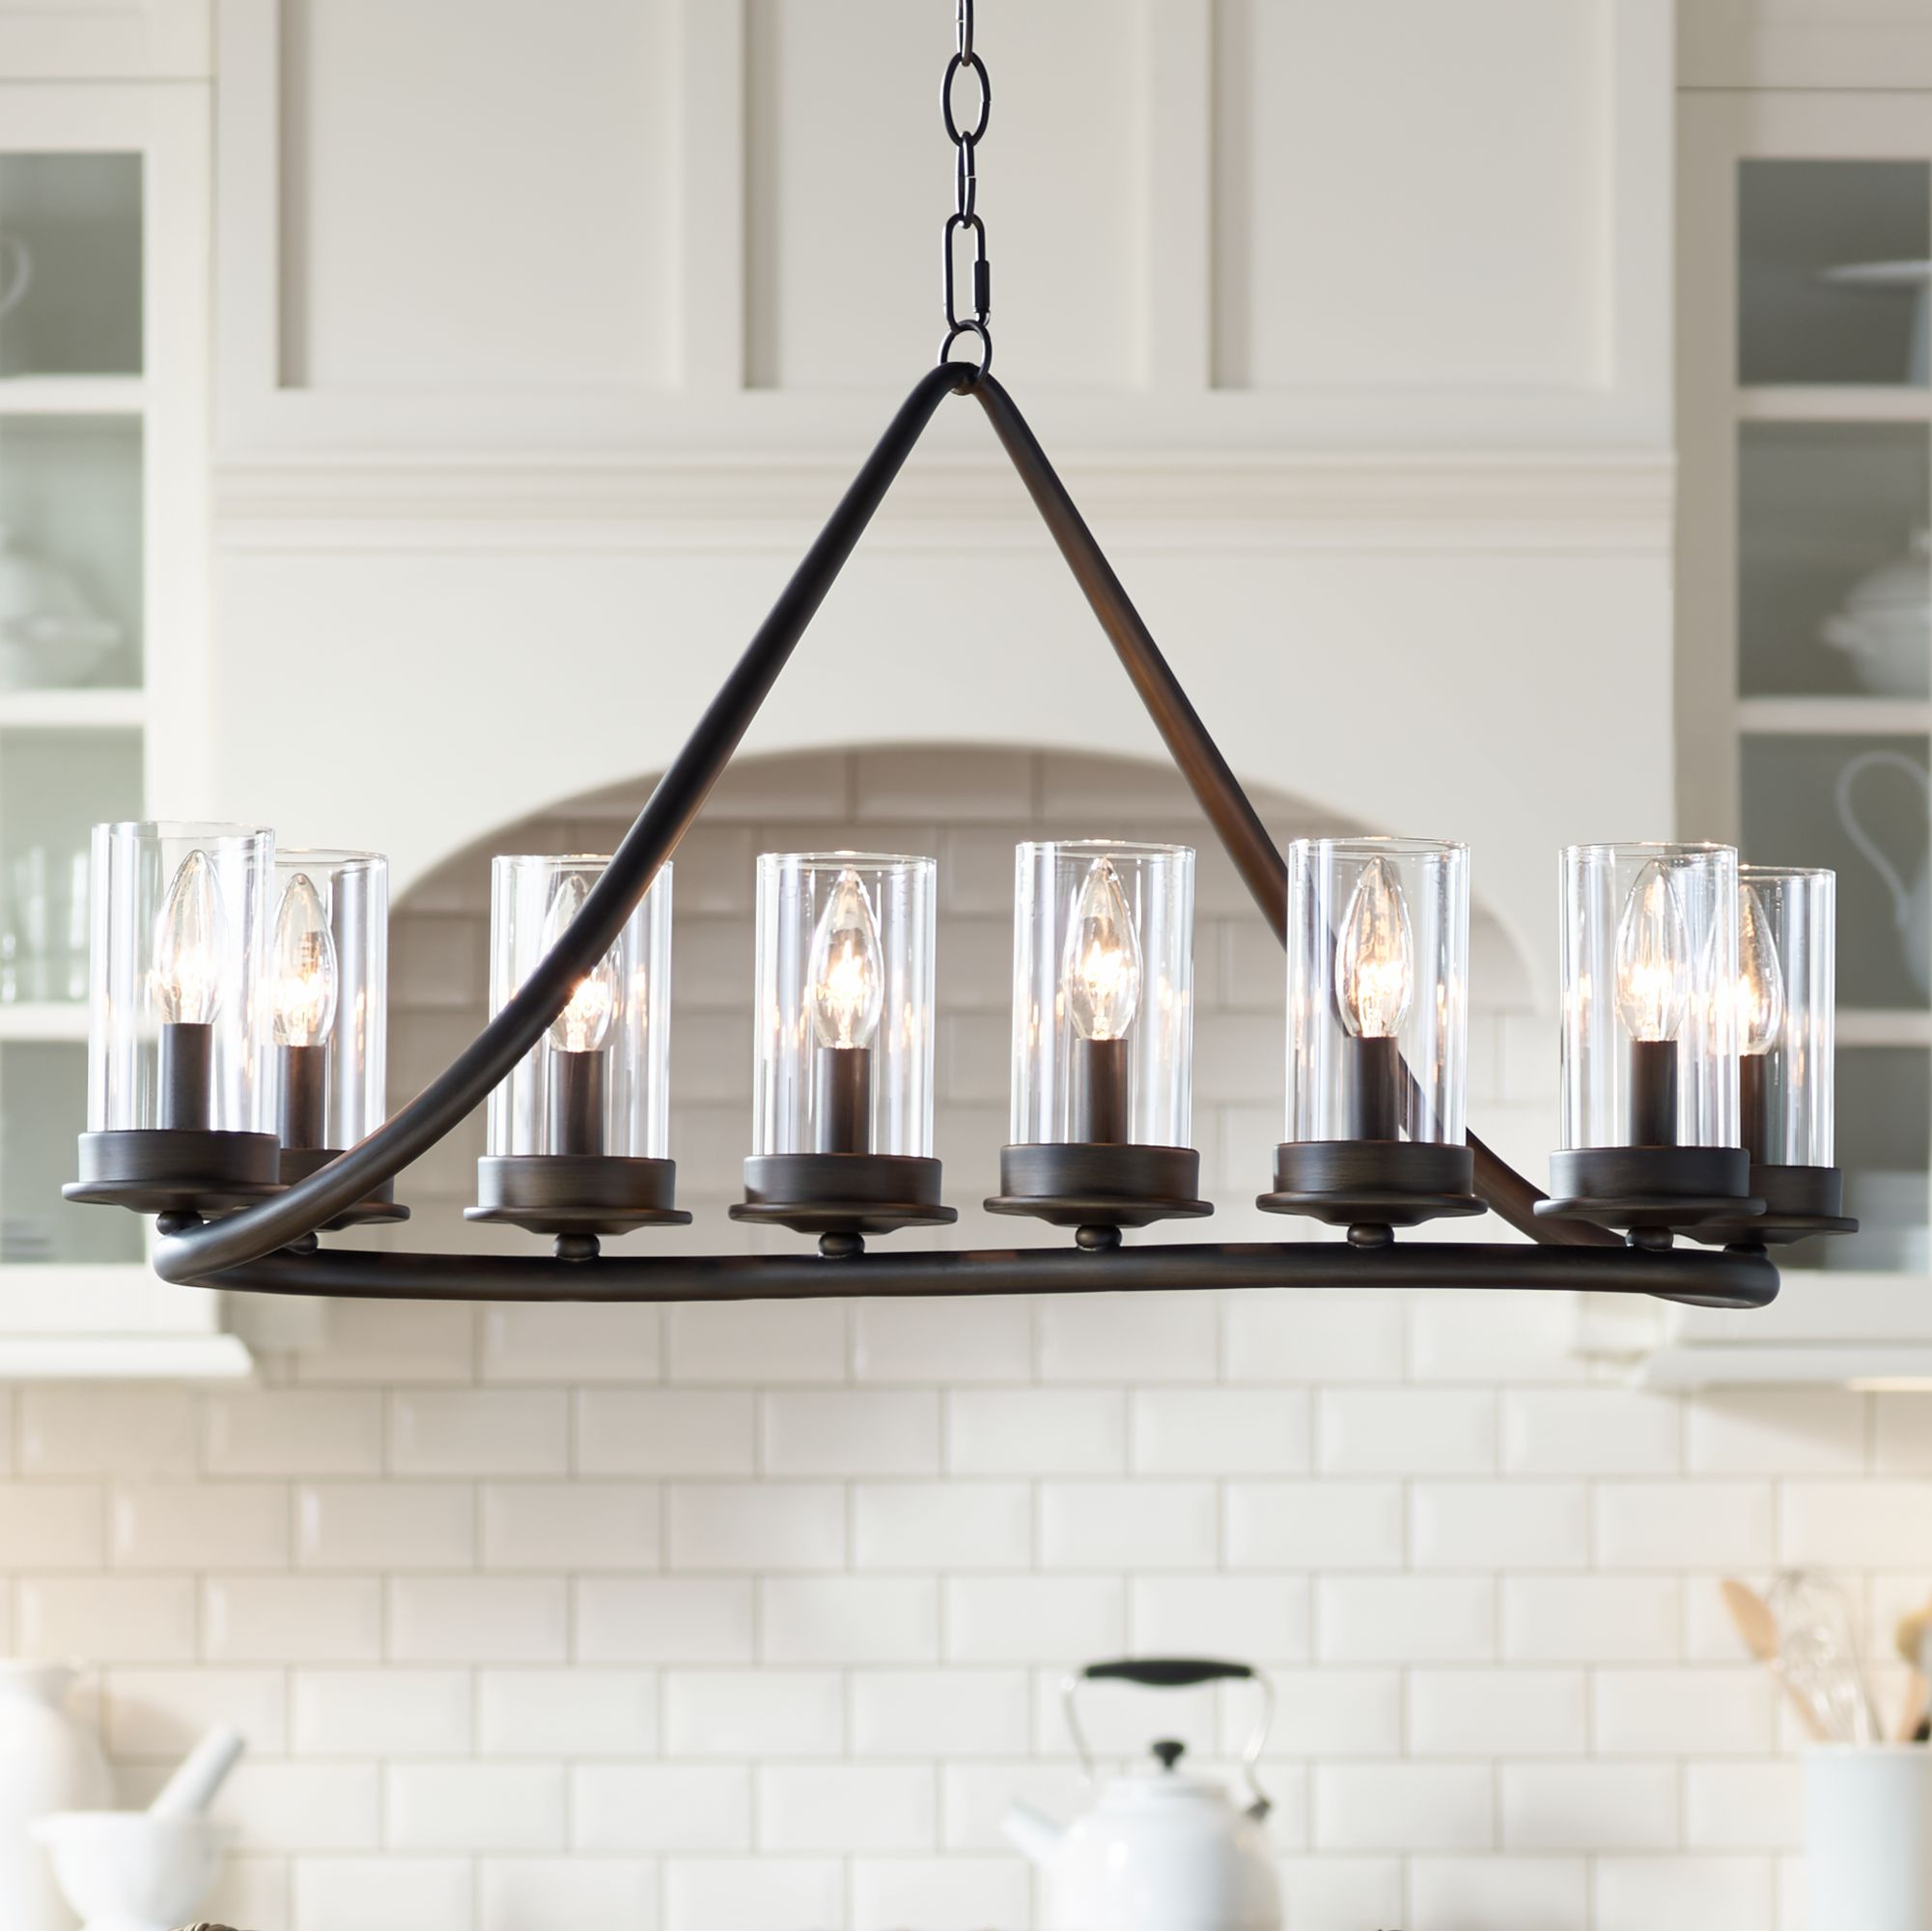 Island pendant lighting Black Heritage 44 Lamps Plus Kitchen Island Lighting Chandelier And Island Lights Lamps Plus